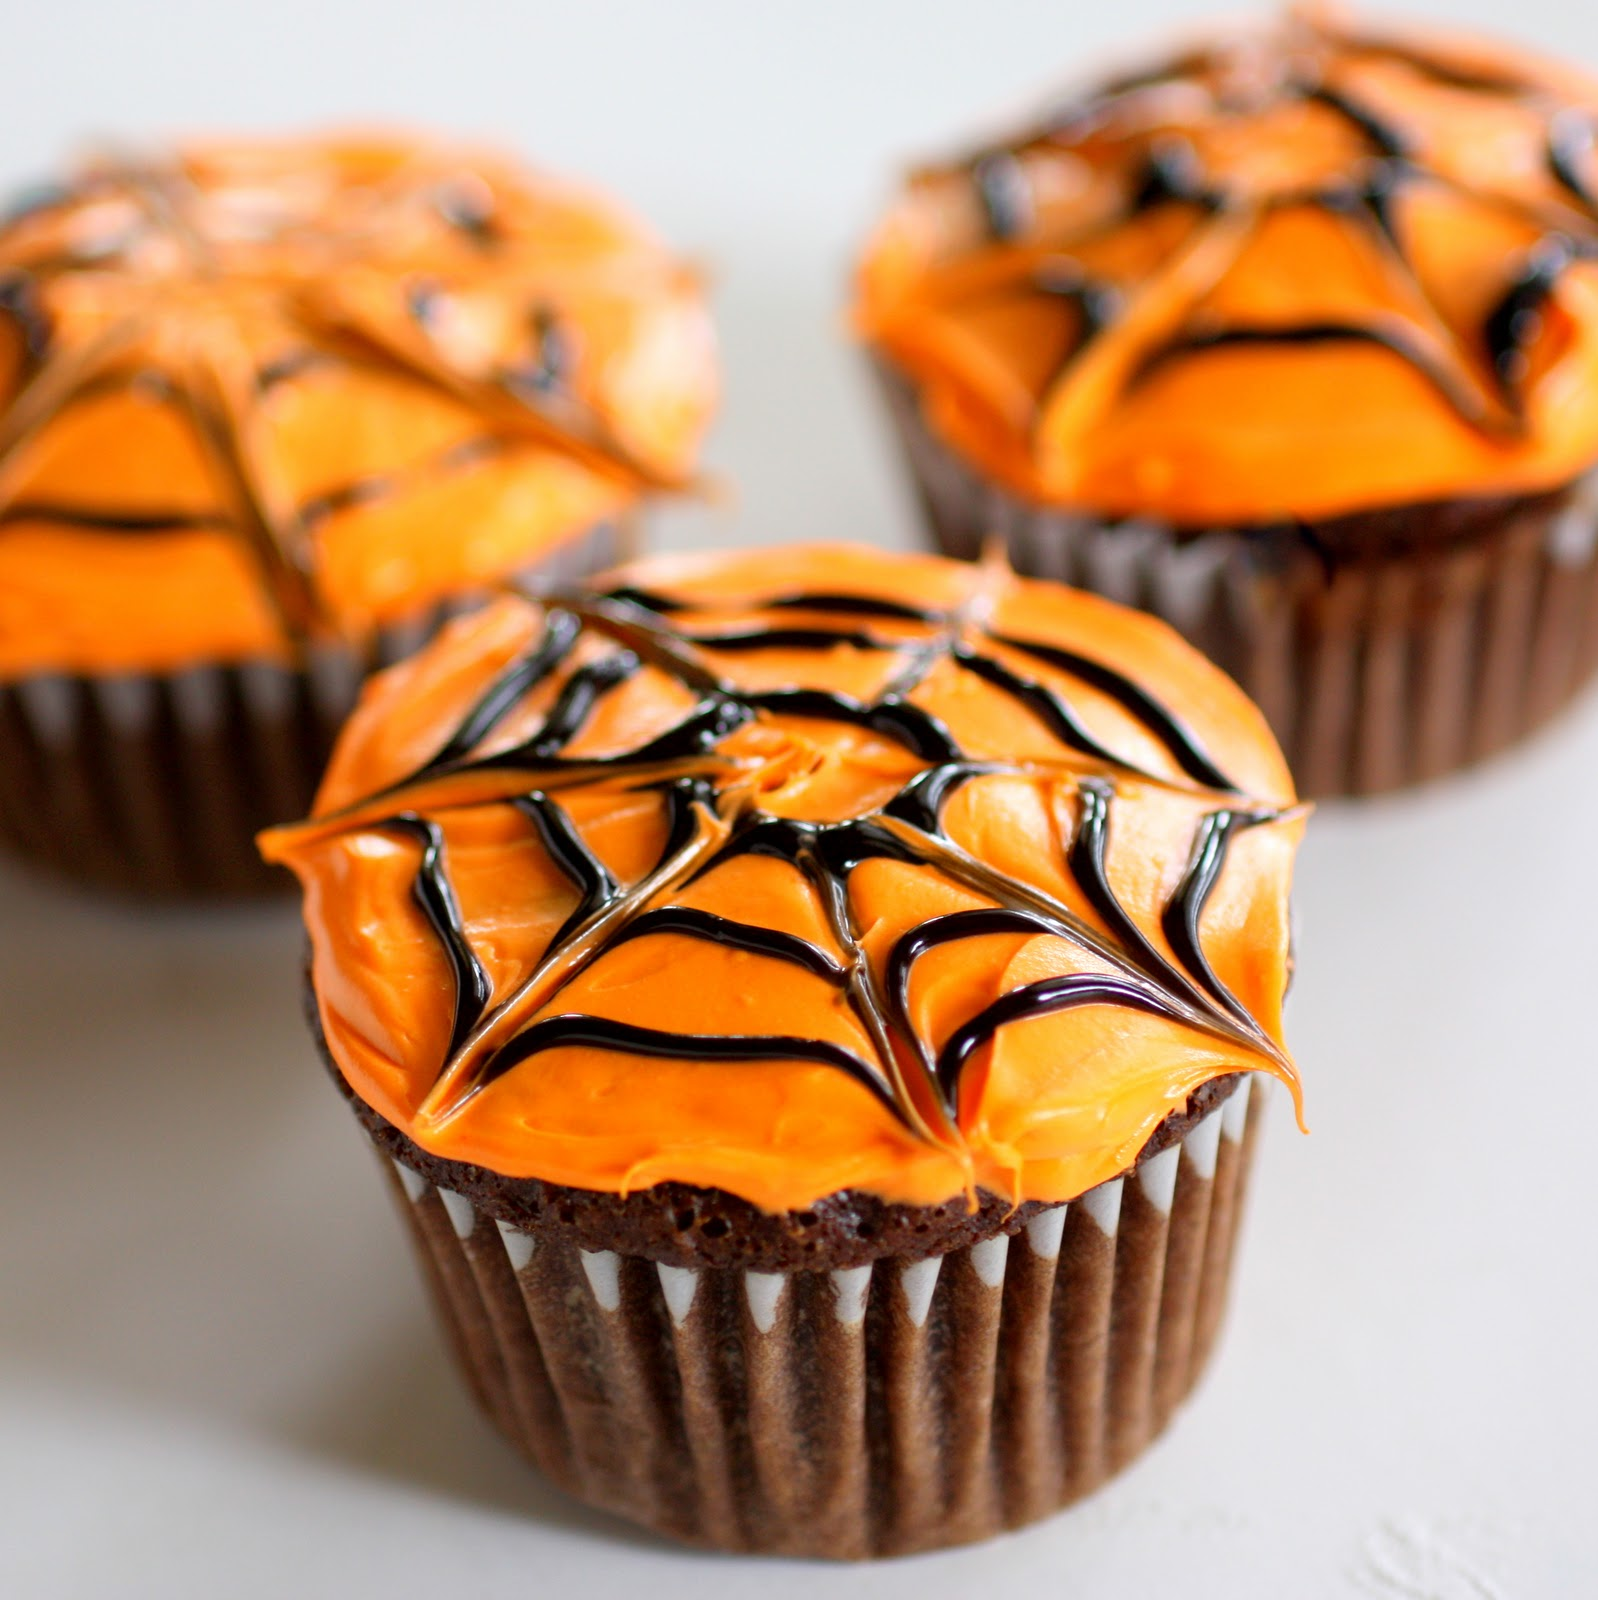 How To Make Orange Frosting Using Food Coloring